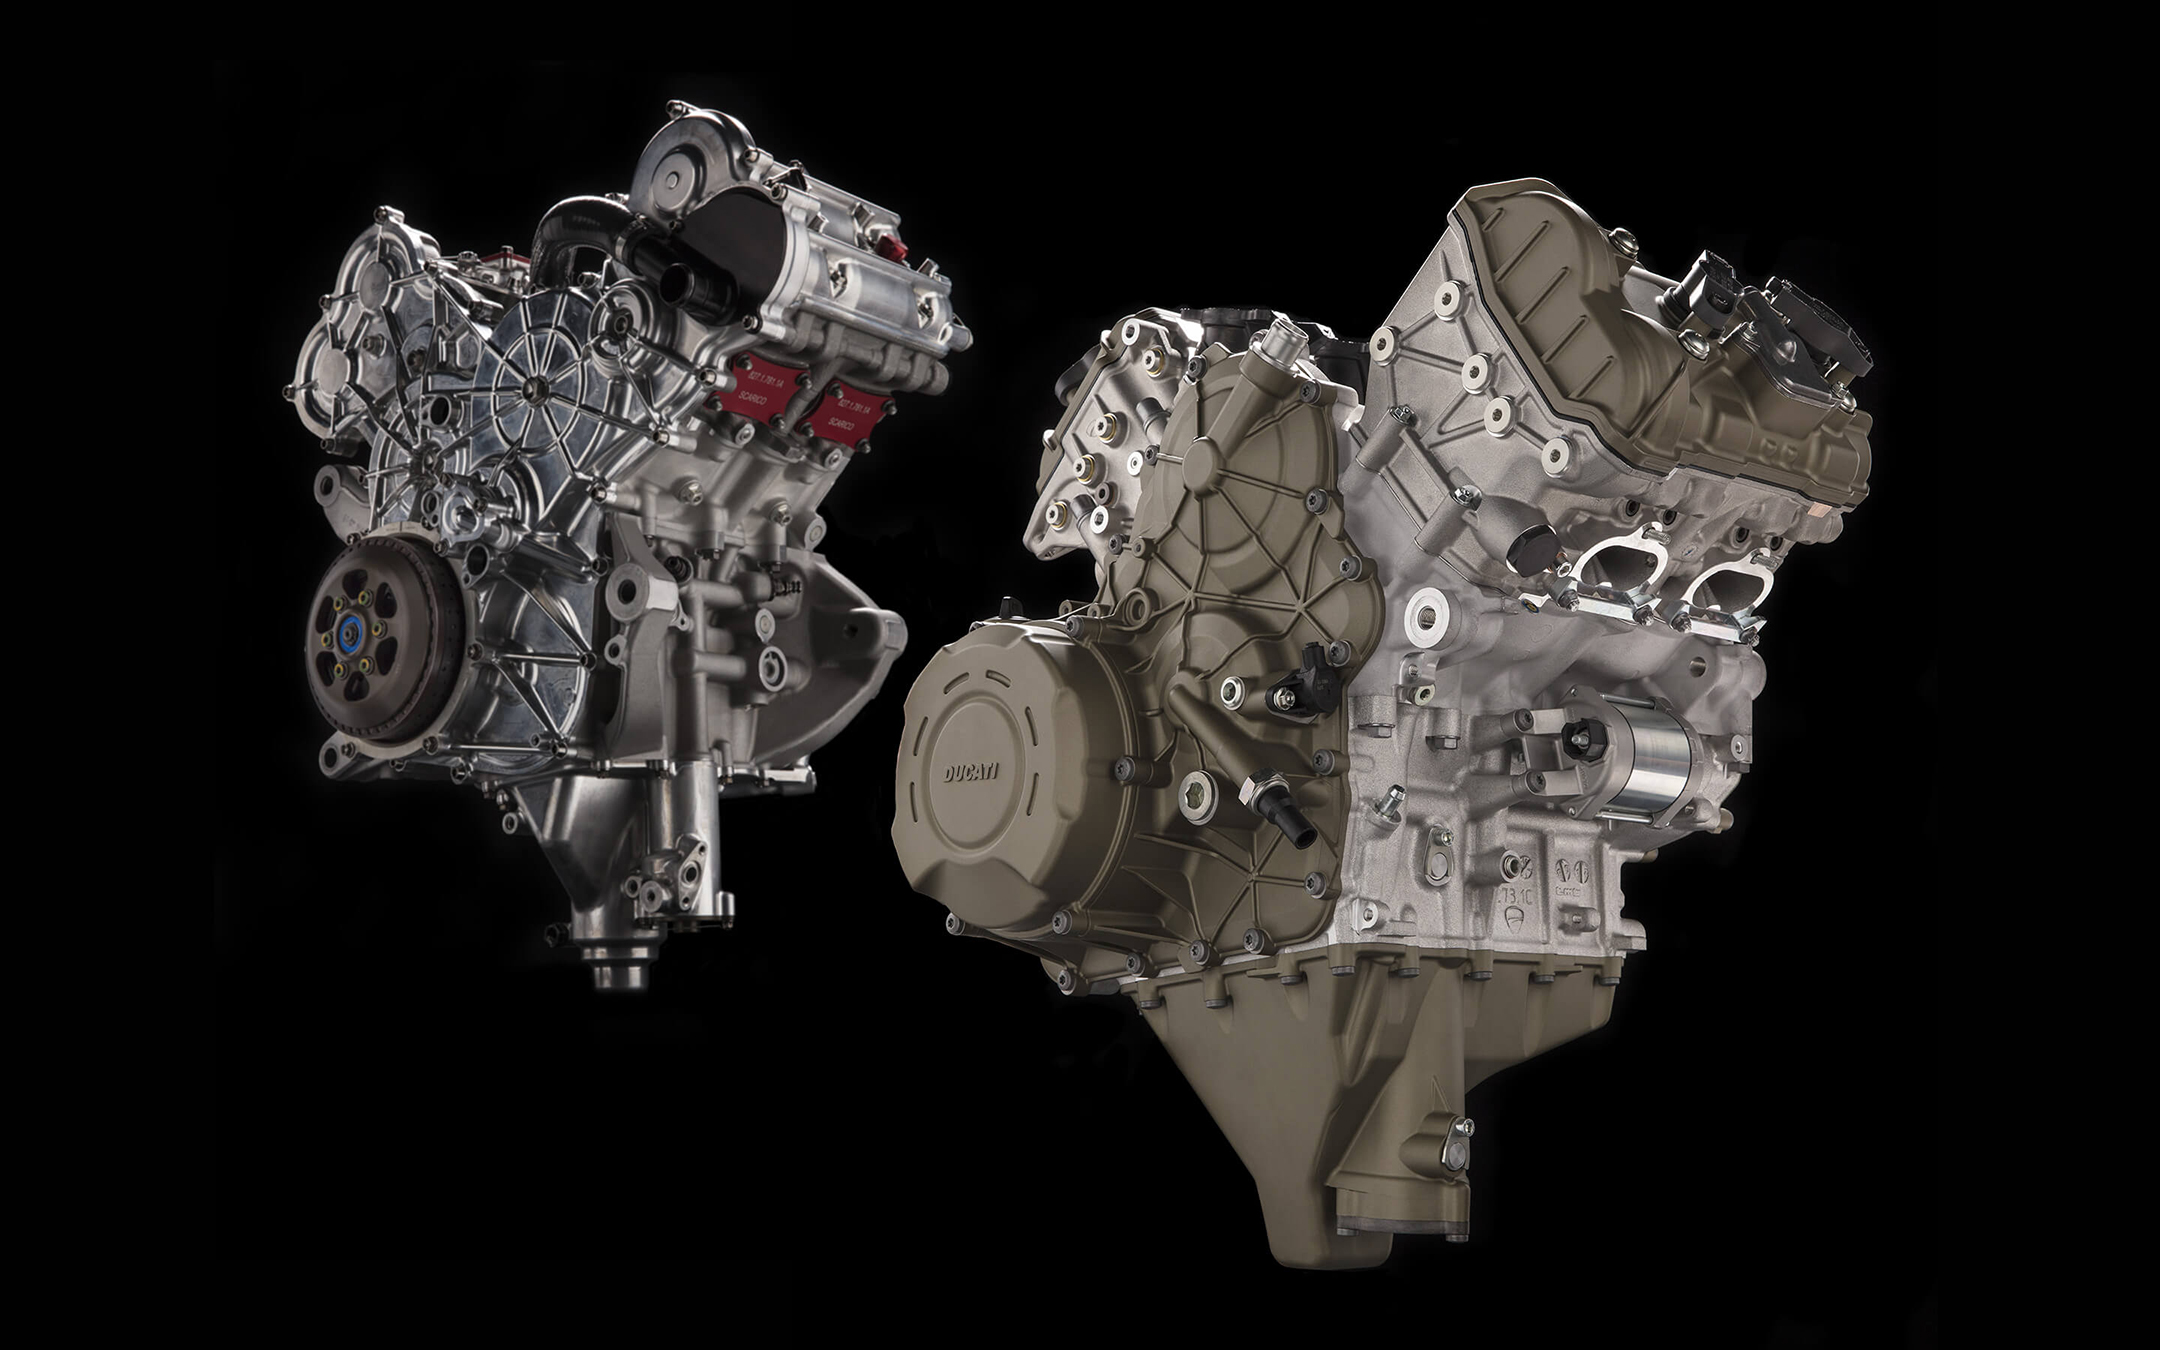 Ducati Panigale V4 - 2018 - Desmosedici Stradale - view inside engine